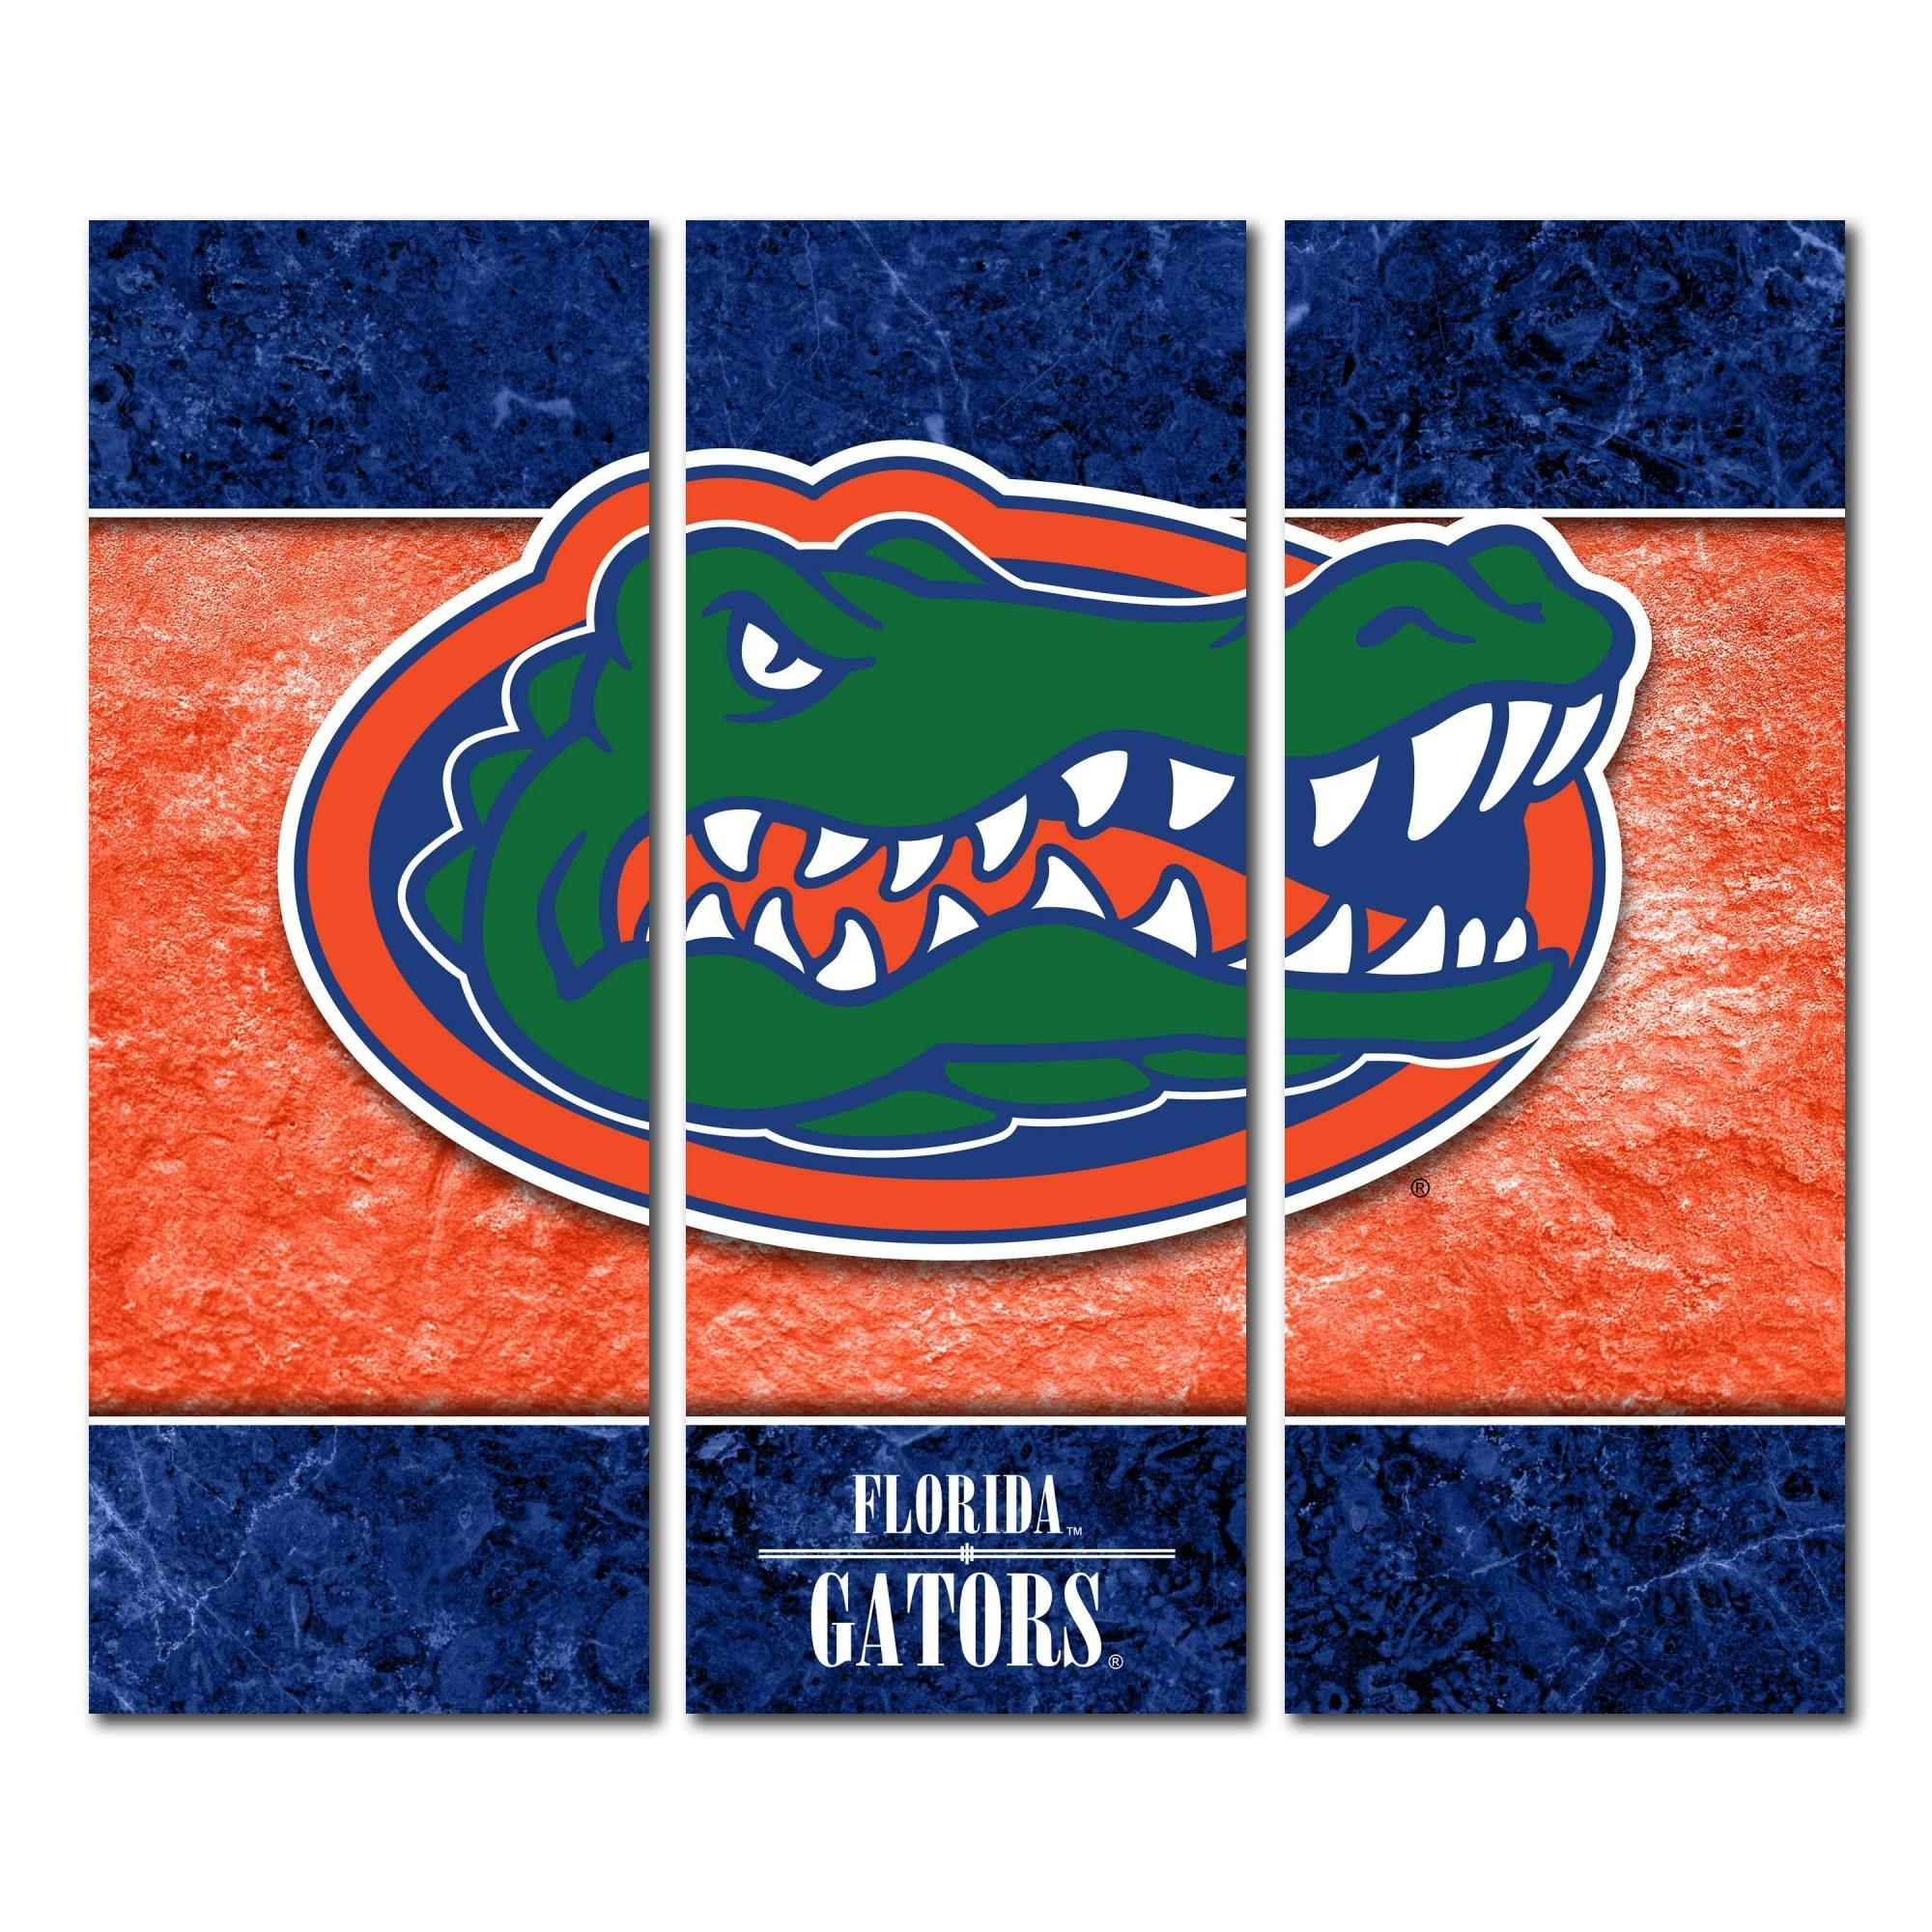 Cornhole Boards & Tailgate Games | Victory Tailgate Intended For Florida Gator Wall Art (View 3 of 20)